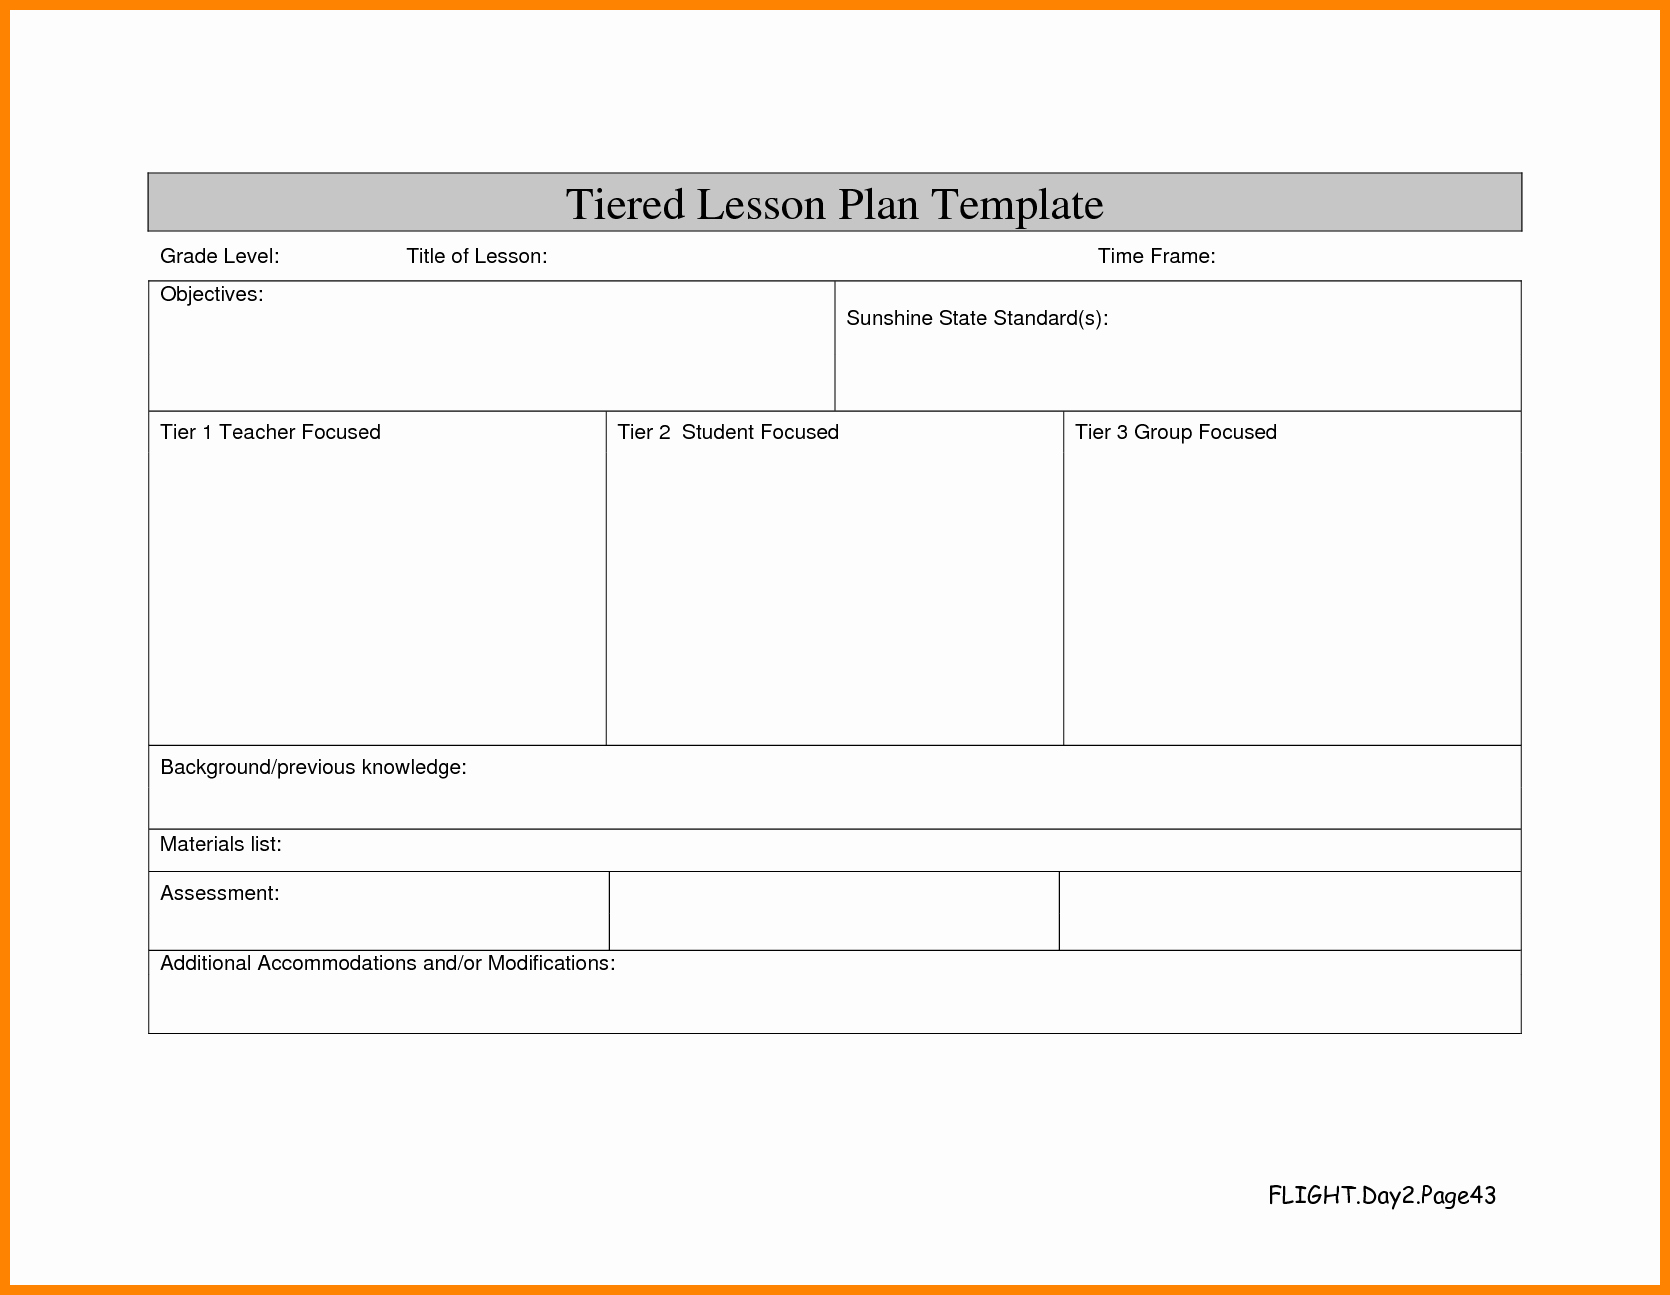 Differentiated Instruction Lesson Plan Template Lovely 15 Differentiated Lesson Plan Template